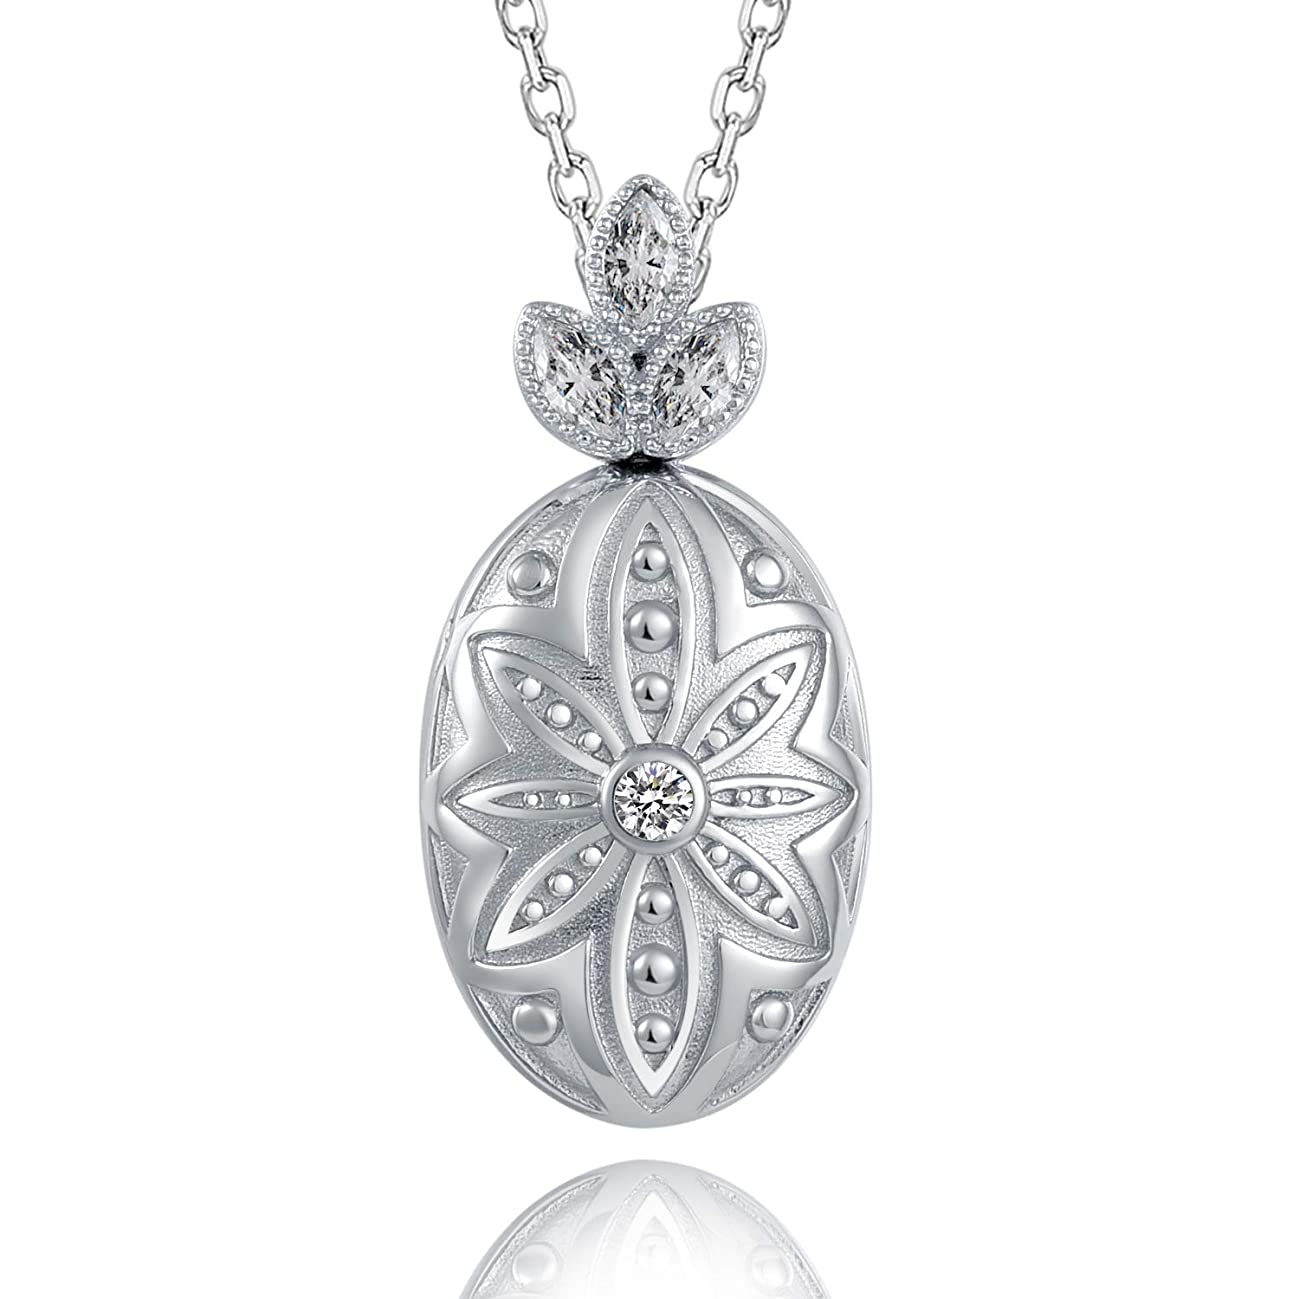 ACJNA 925 Sterling Silver Flower Oval Locket Pendant Necklace for Women